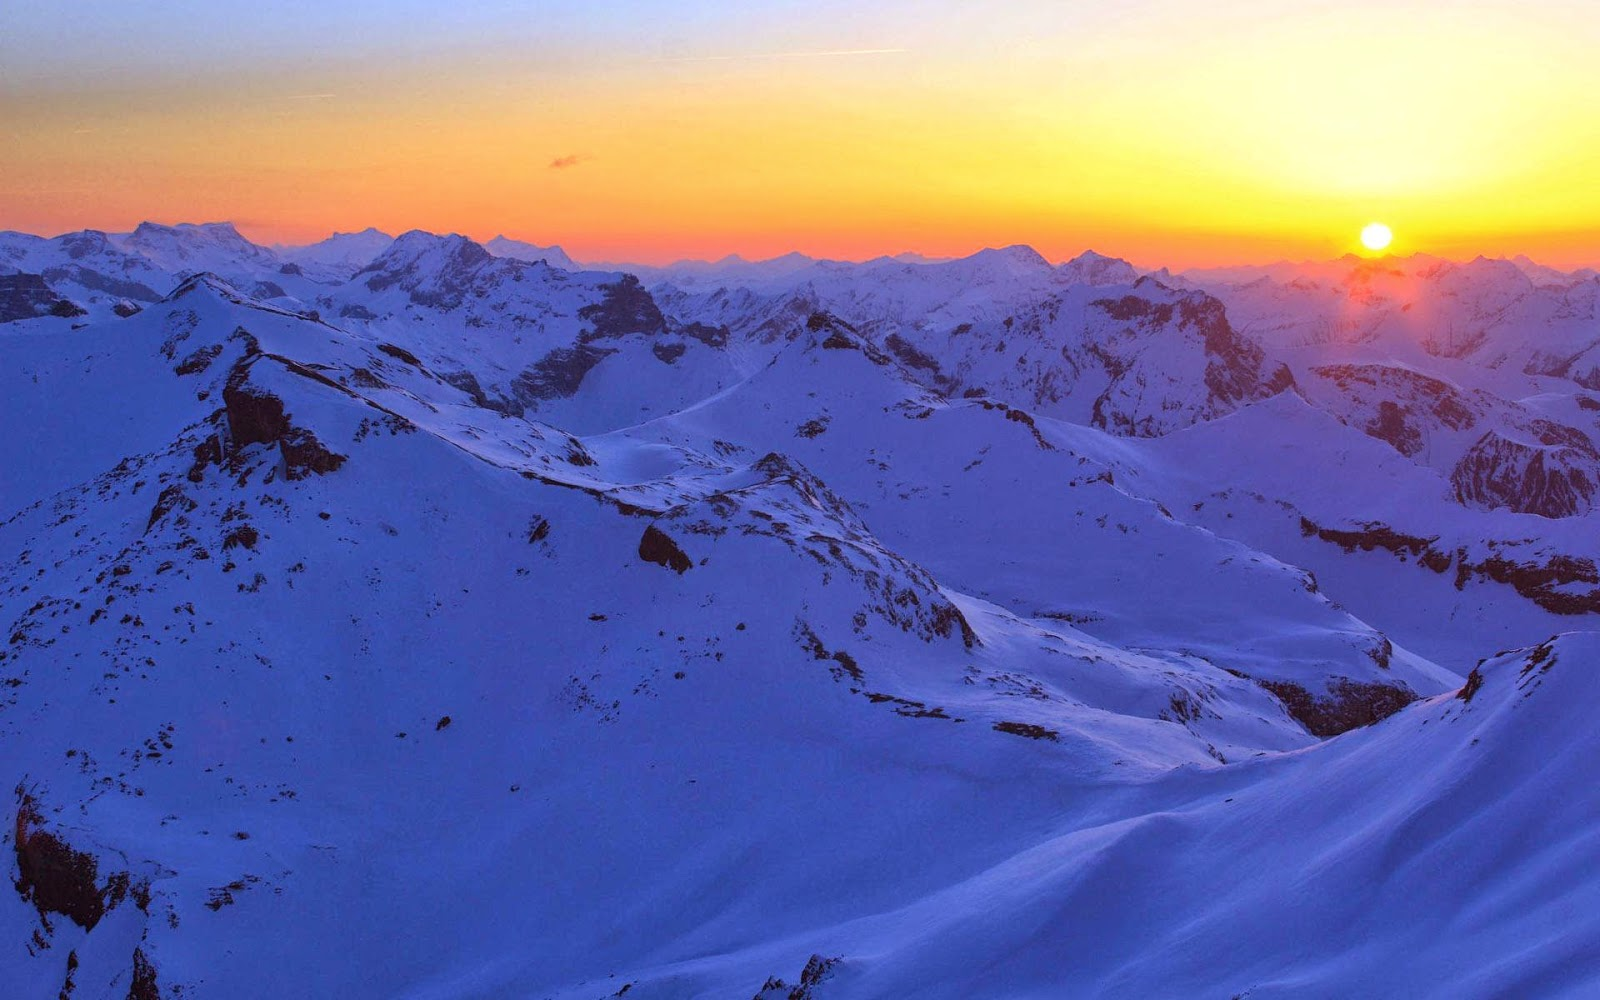 Beautiful Nature Images And Wallpapers: Snow Mountain ...